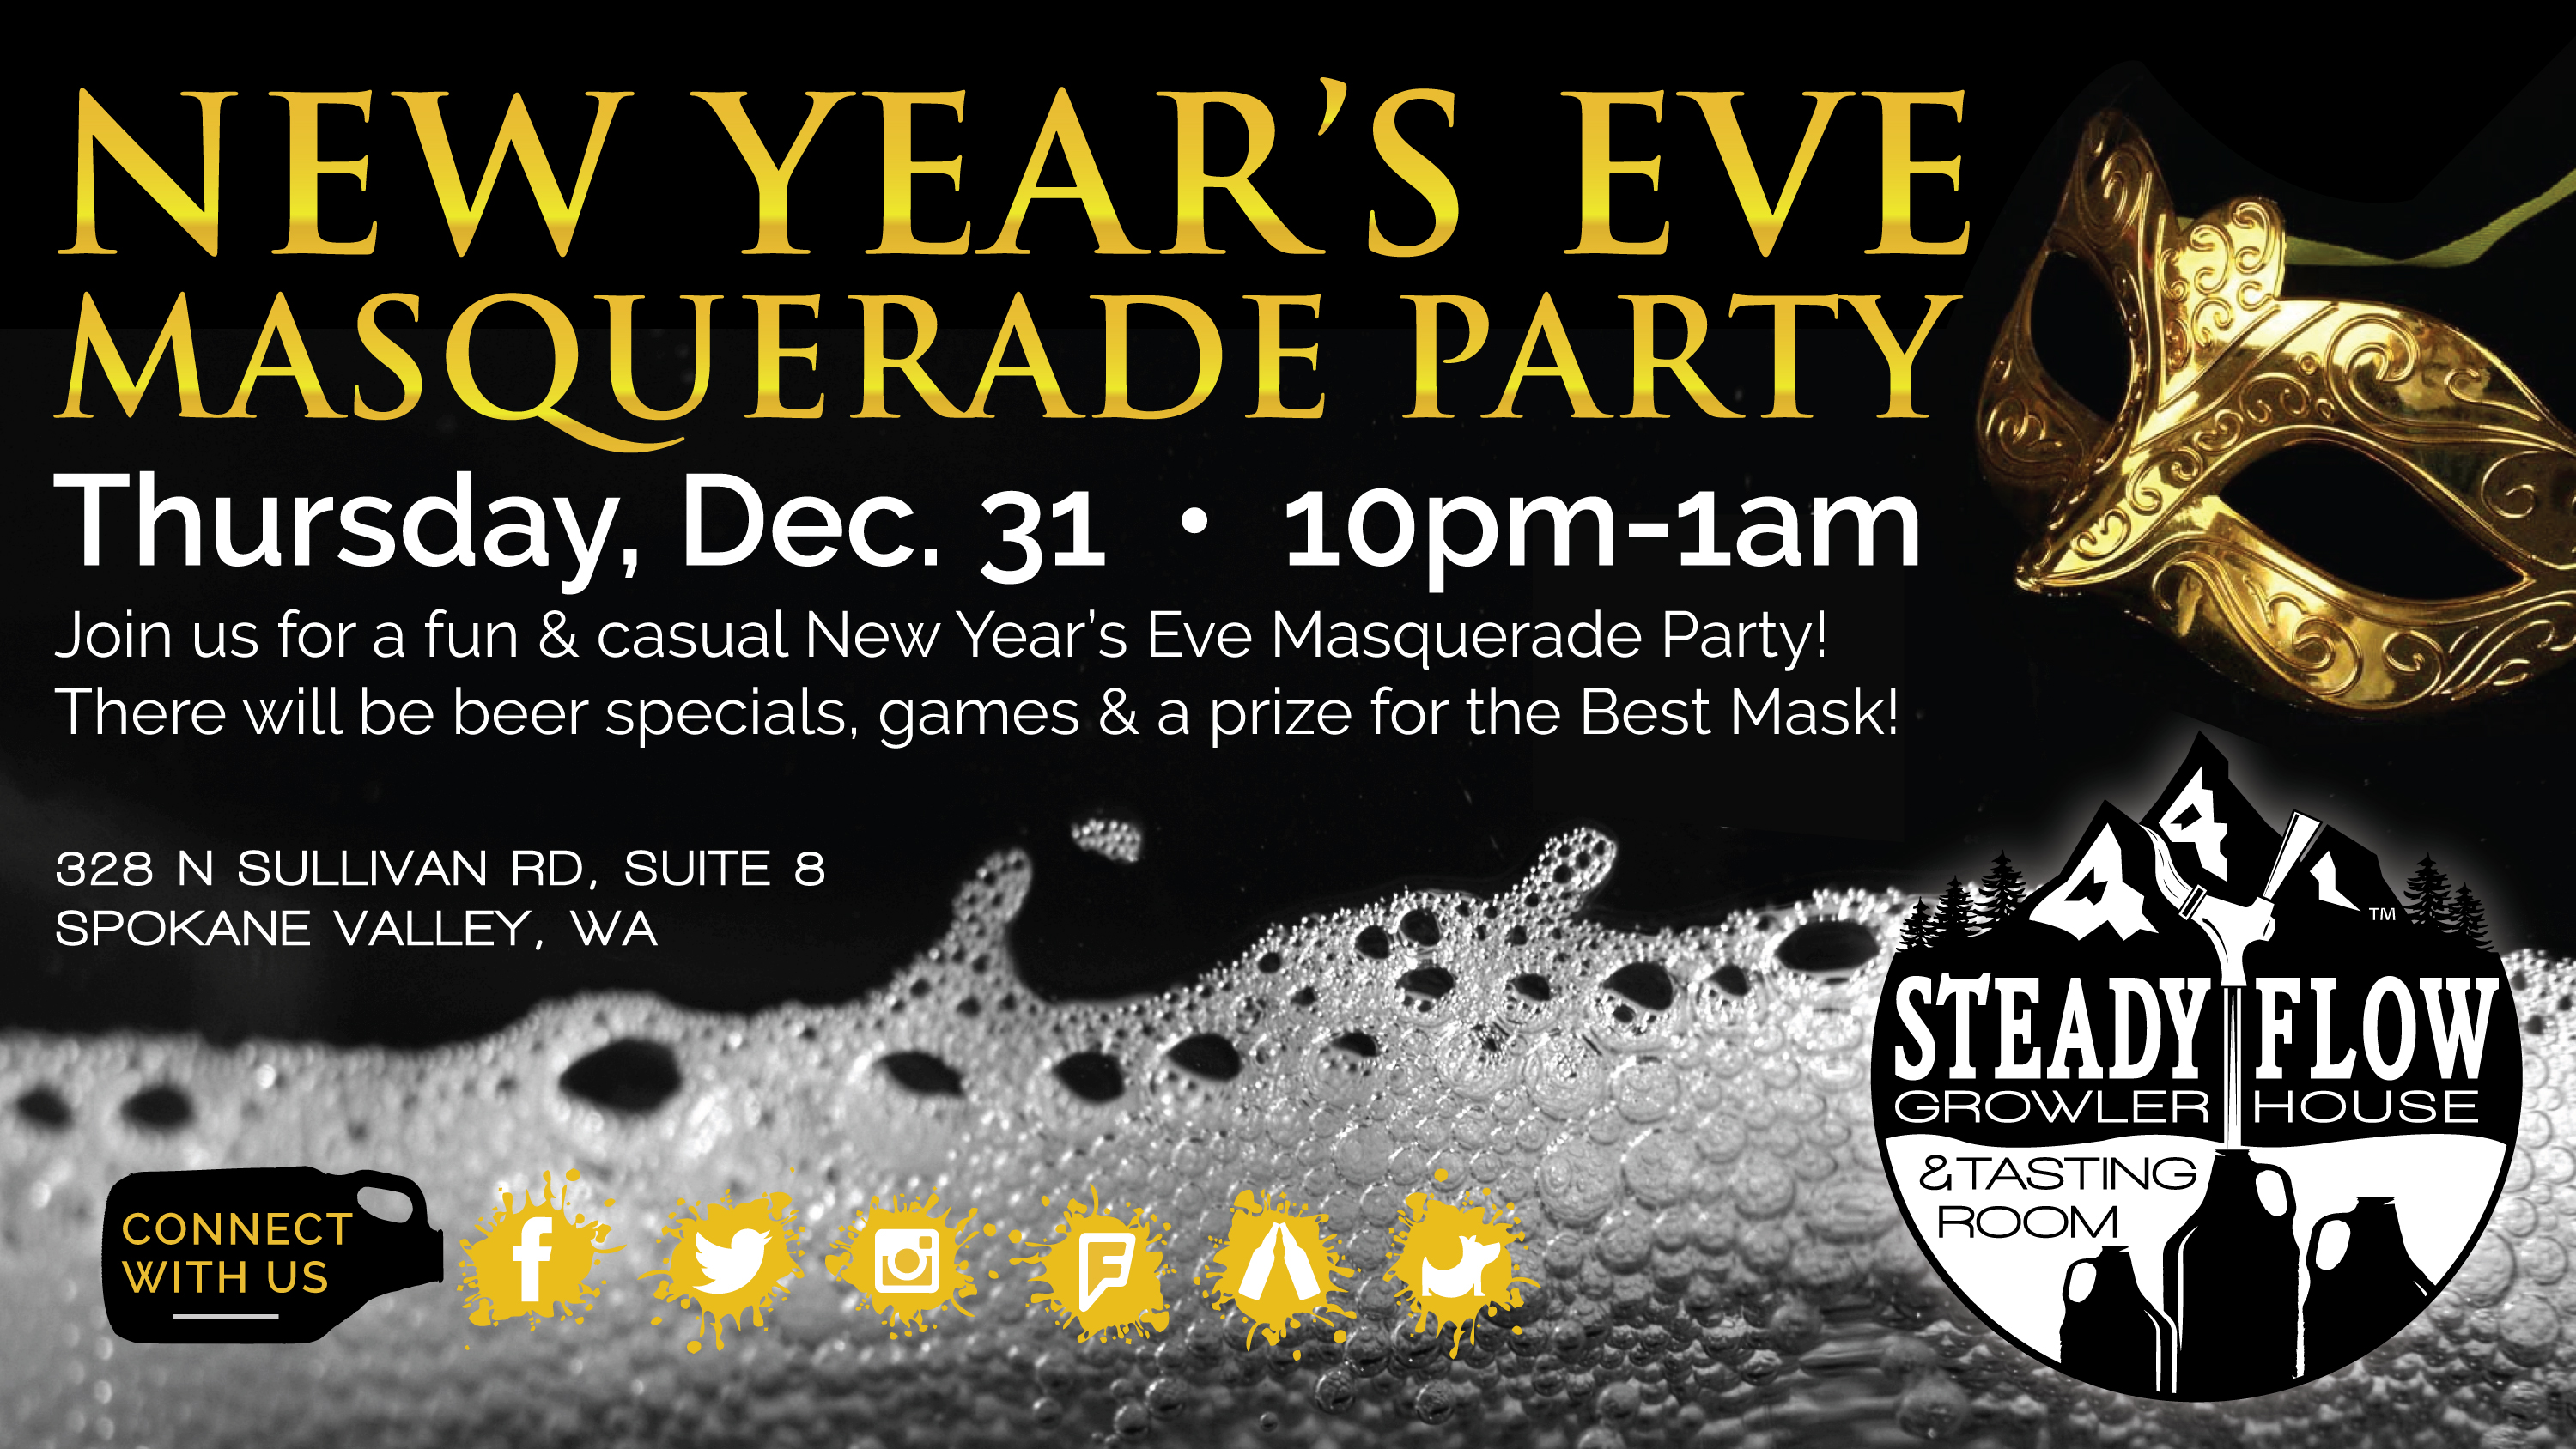 New Year's Eve Masquerade Party!